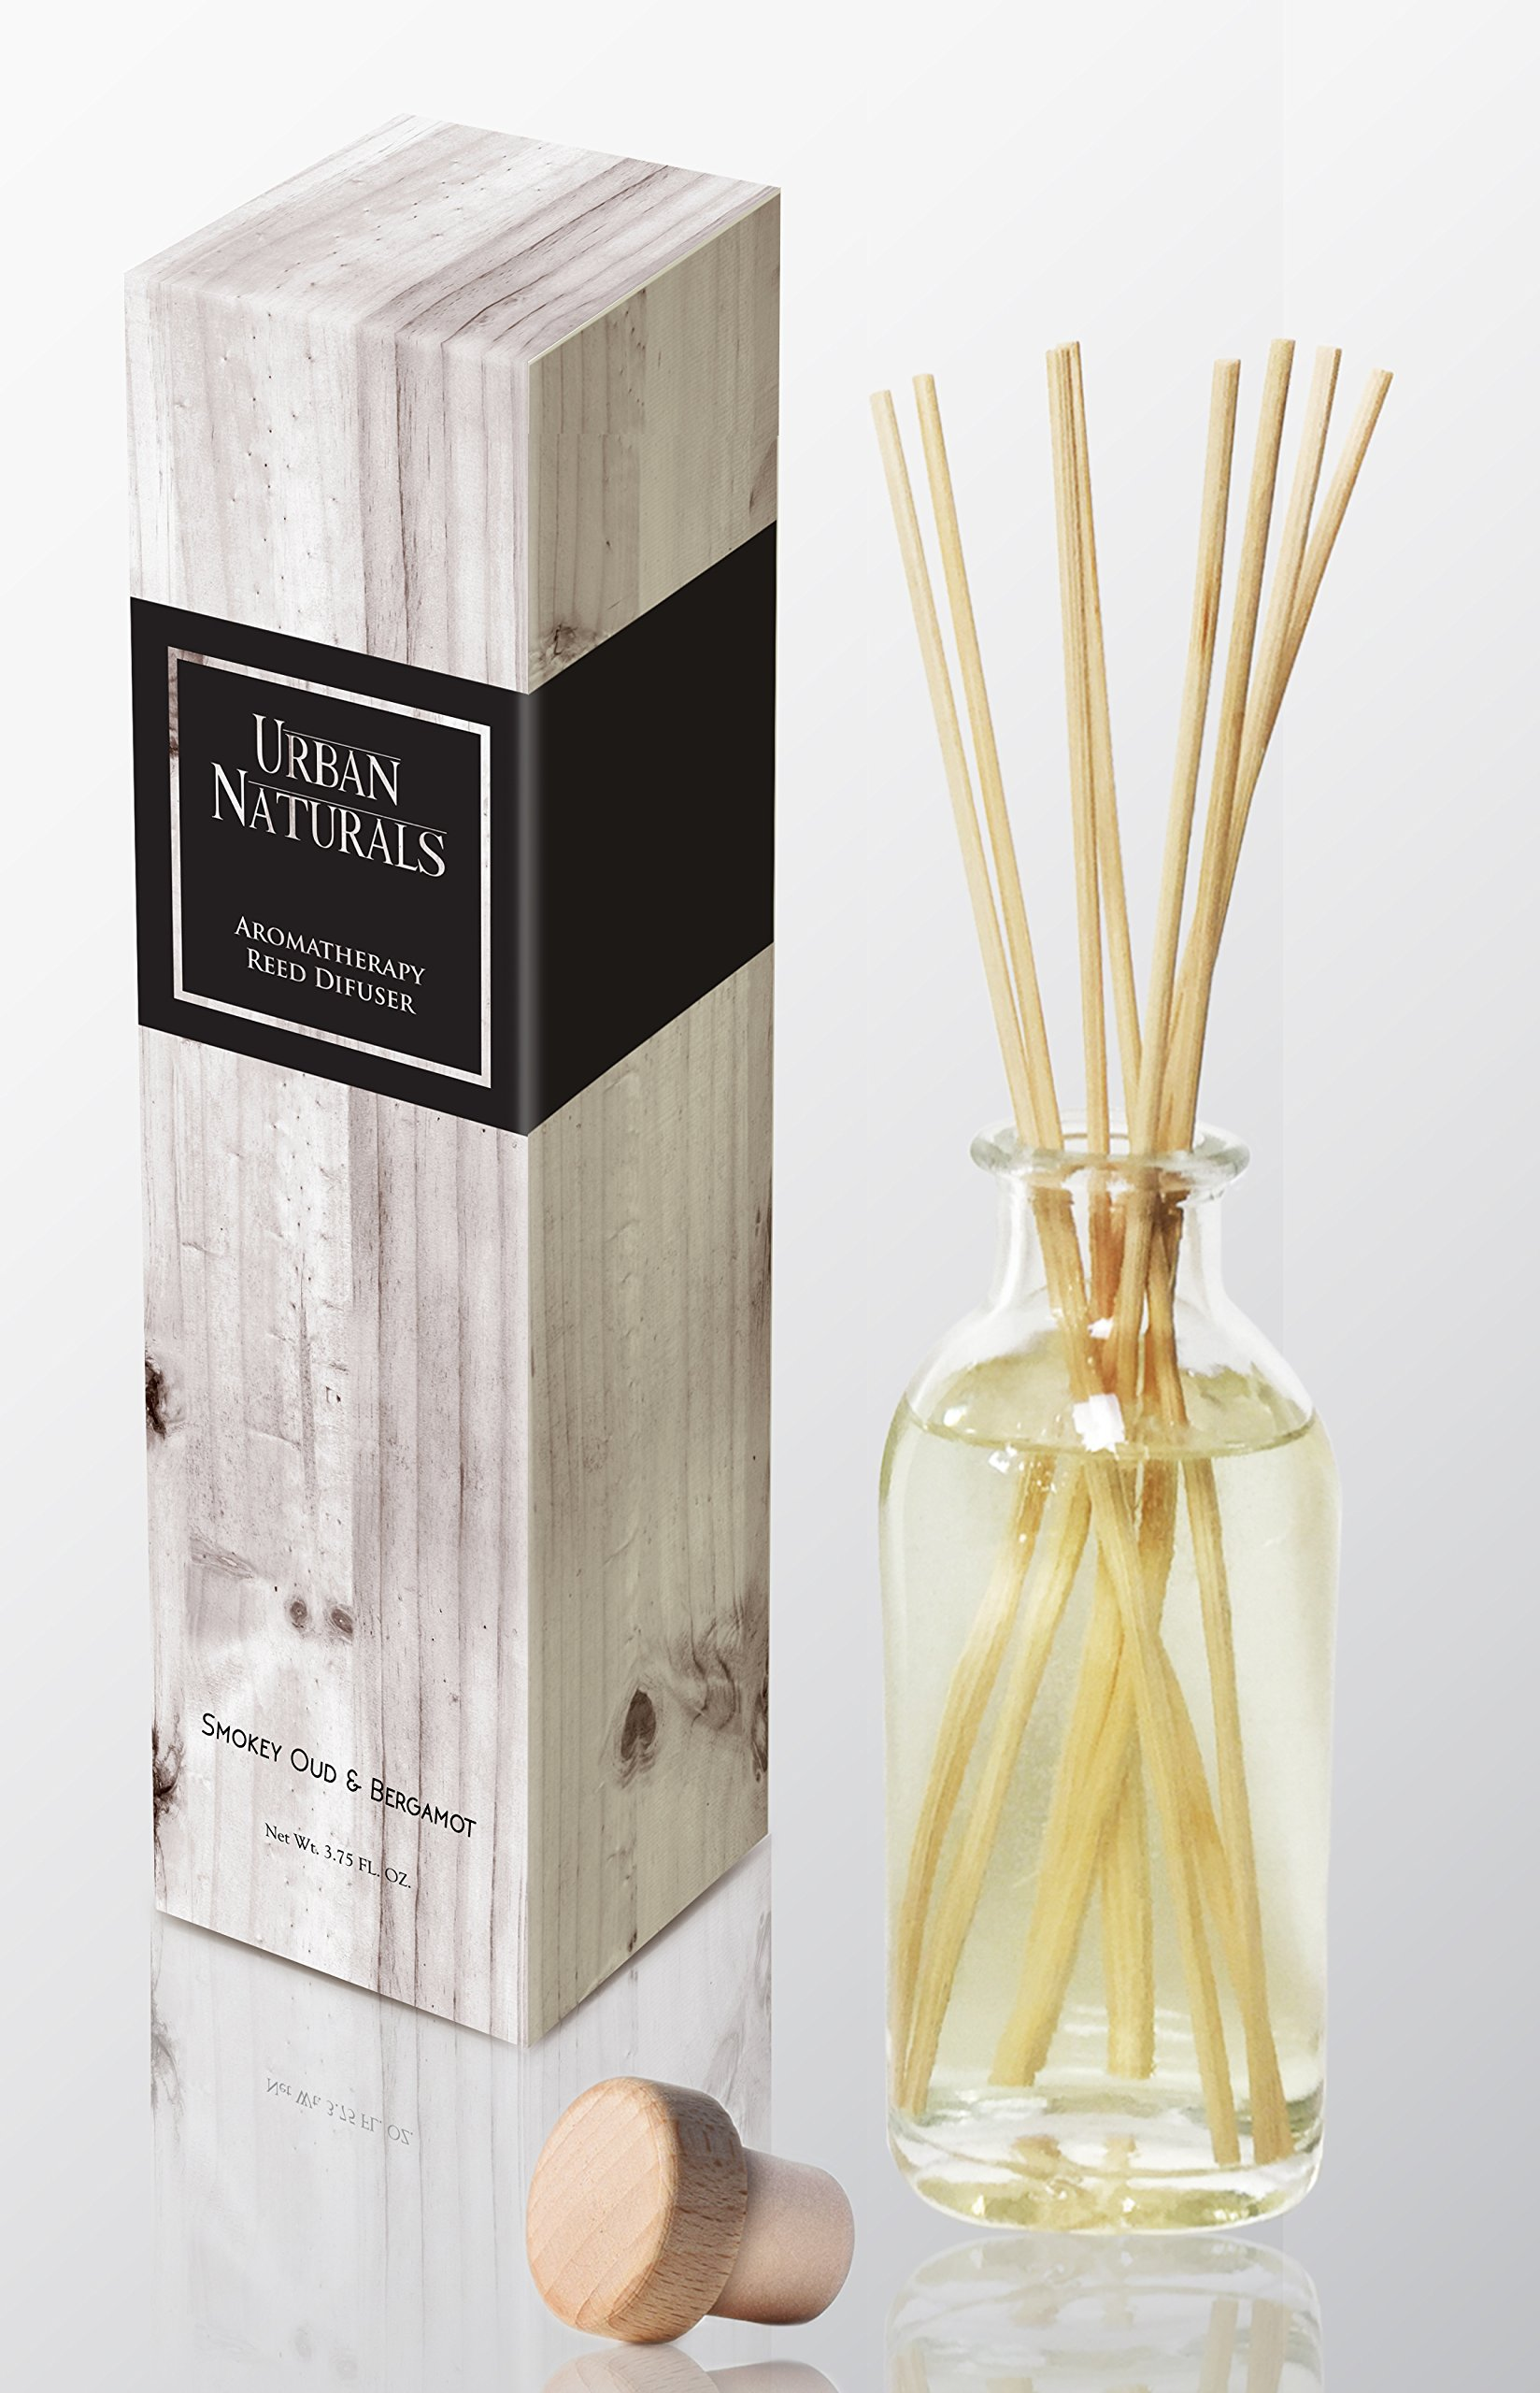 Urban Naturals Smoky Oud & Bergamot Reed Diffuser   Leather, Tobacco, Amber & Wood Notes by Urban Naturals (Image #1)